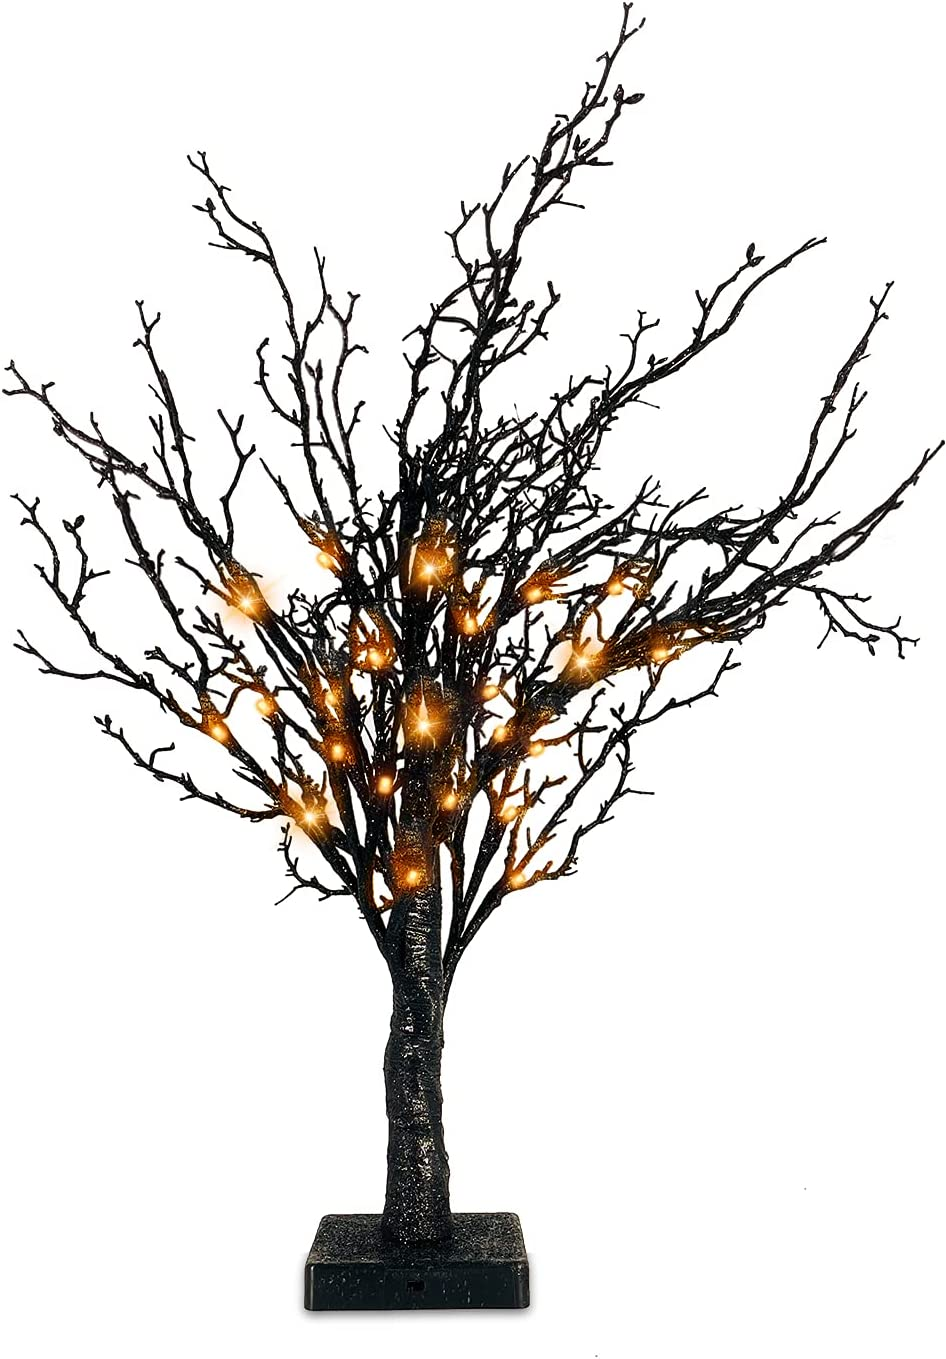 TURNMEON 24 Inch 24 LED Halloween Tree with Timer Black Glitter Twigs Tree with Orange Lights Battery Operated Tabletop Halloween Spooky Tree Decorations for Indoor Home Party Holiday Festival Decor